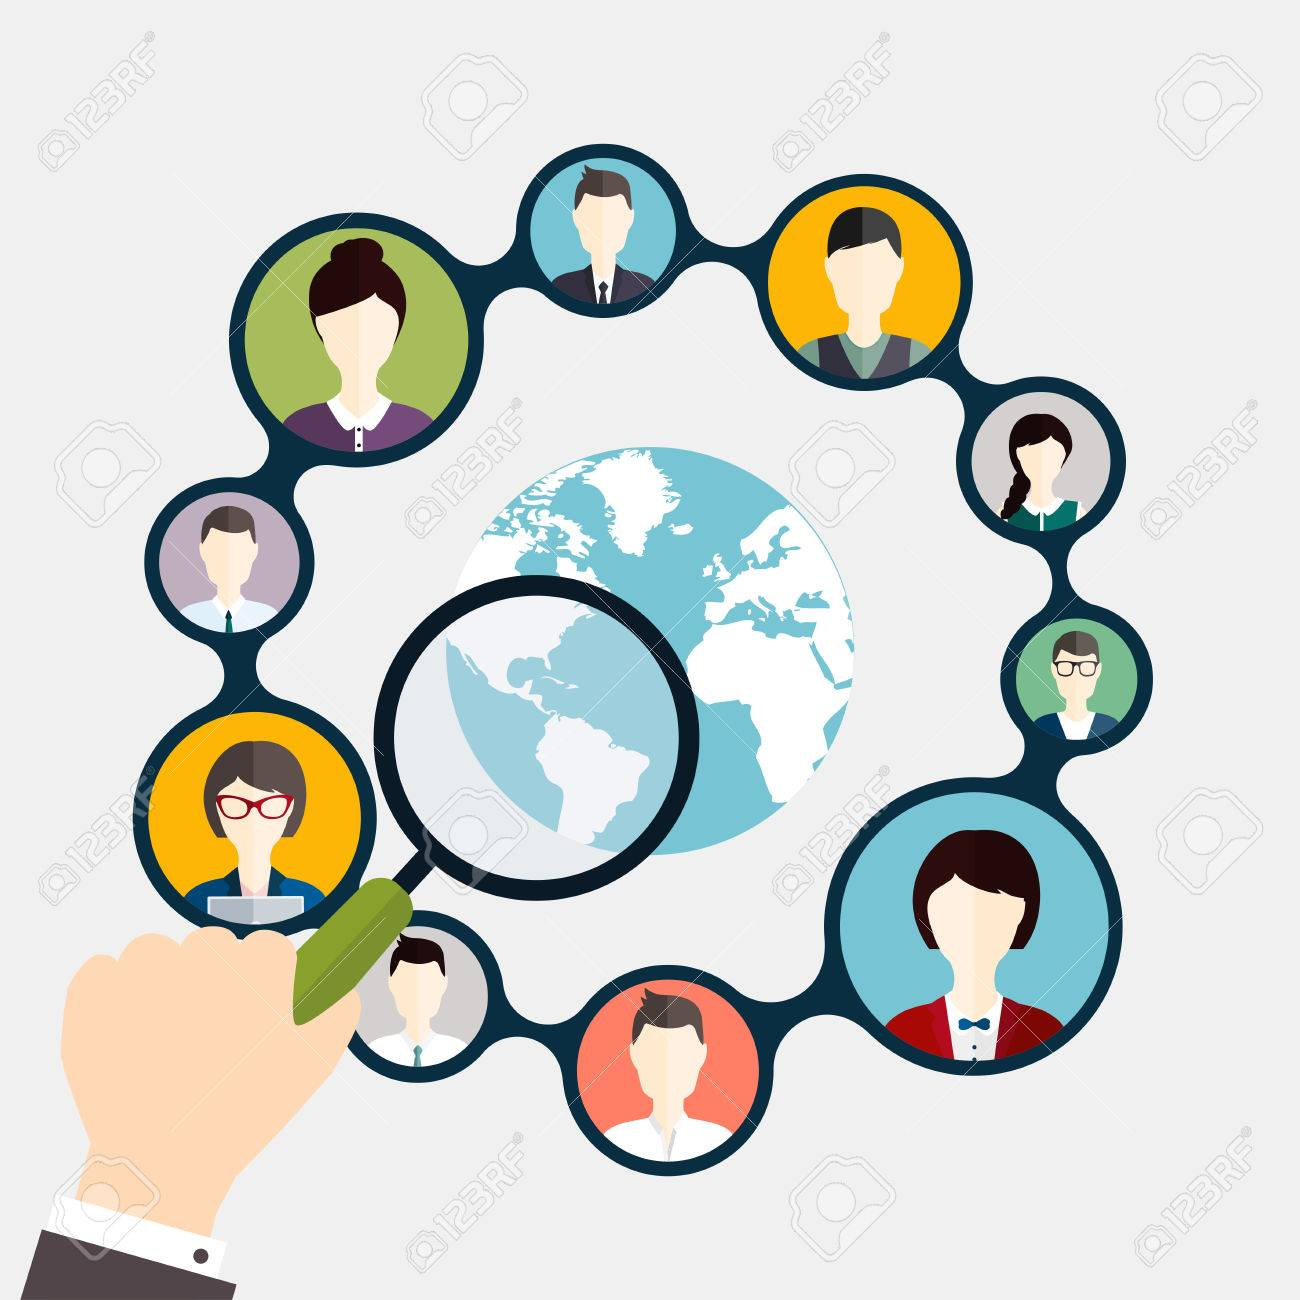 Social Networking and Social Media avatar Concept. - 45870632